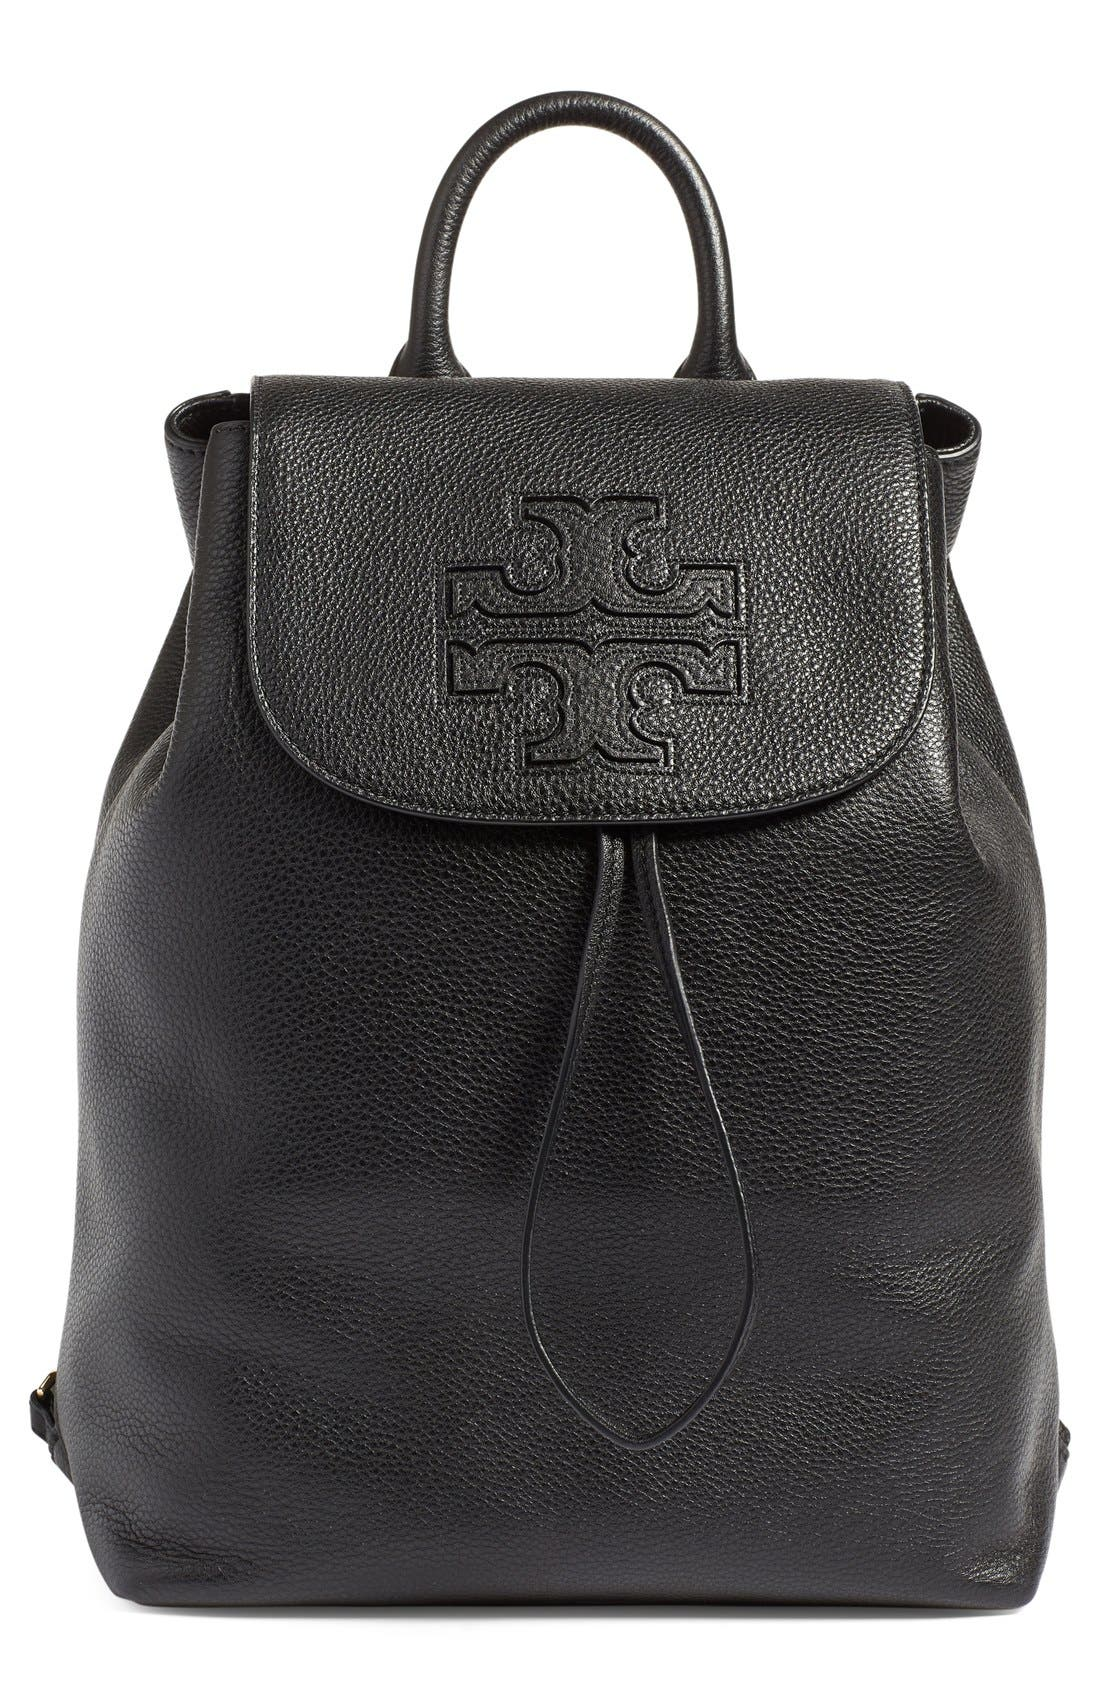 TORY BURCH,                             'Harper' Leather Backpack,                             Main thumbnail 1, color,                             012